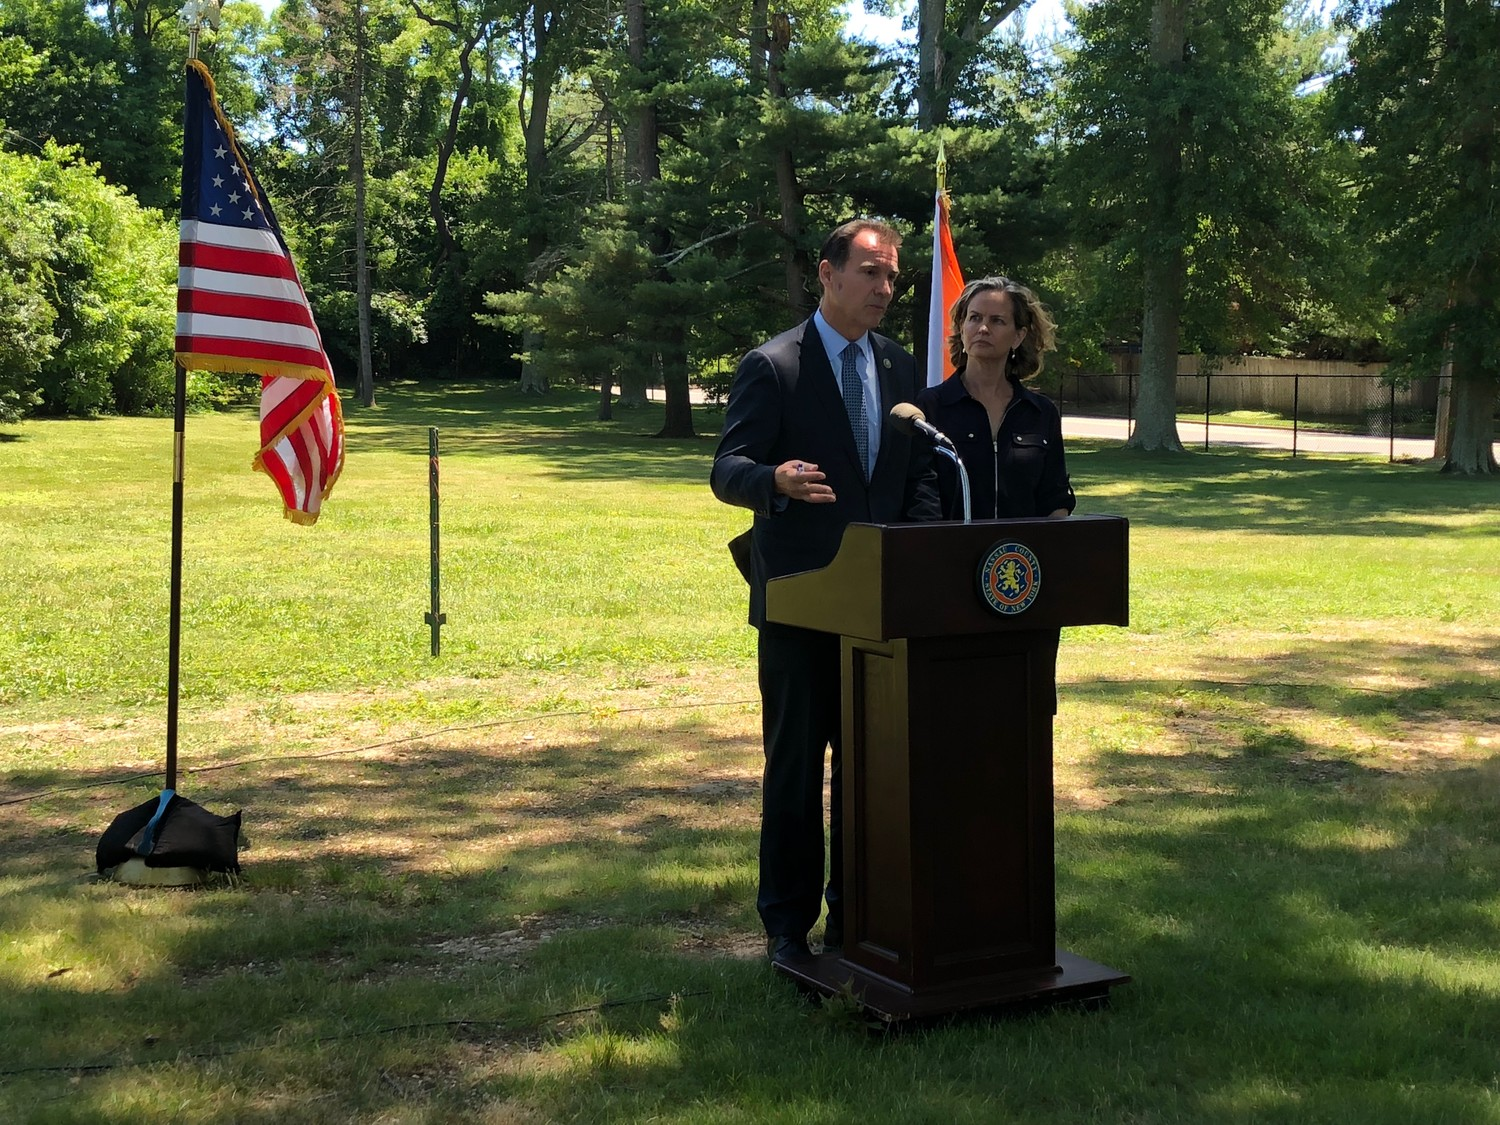 U.S. Rep. Tom Suozzi and County Executive Laura Curran held a press conference after their visit to MercyFirst on Monday, where 10 migrant children from the border are being housed.